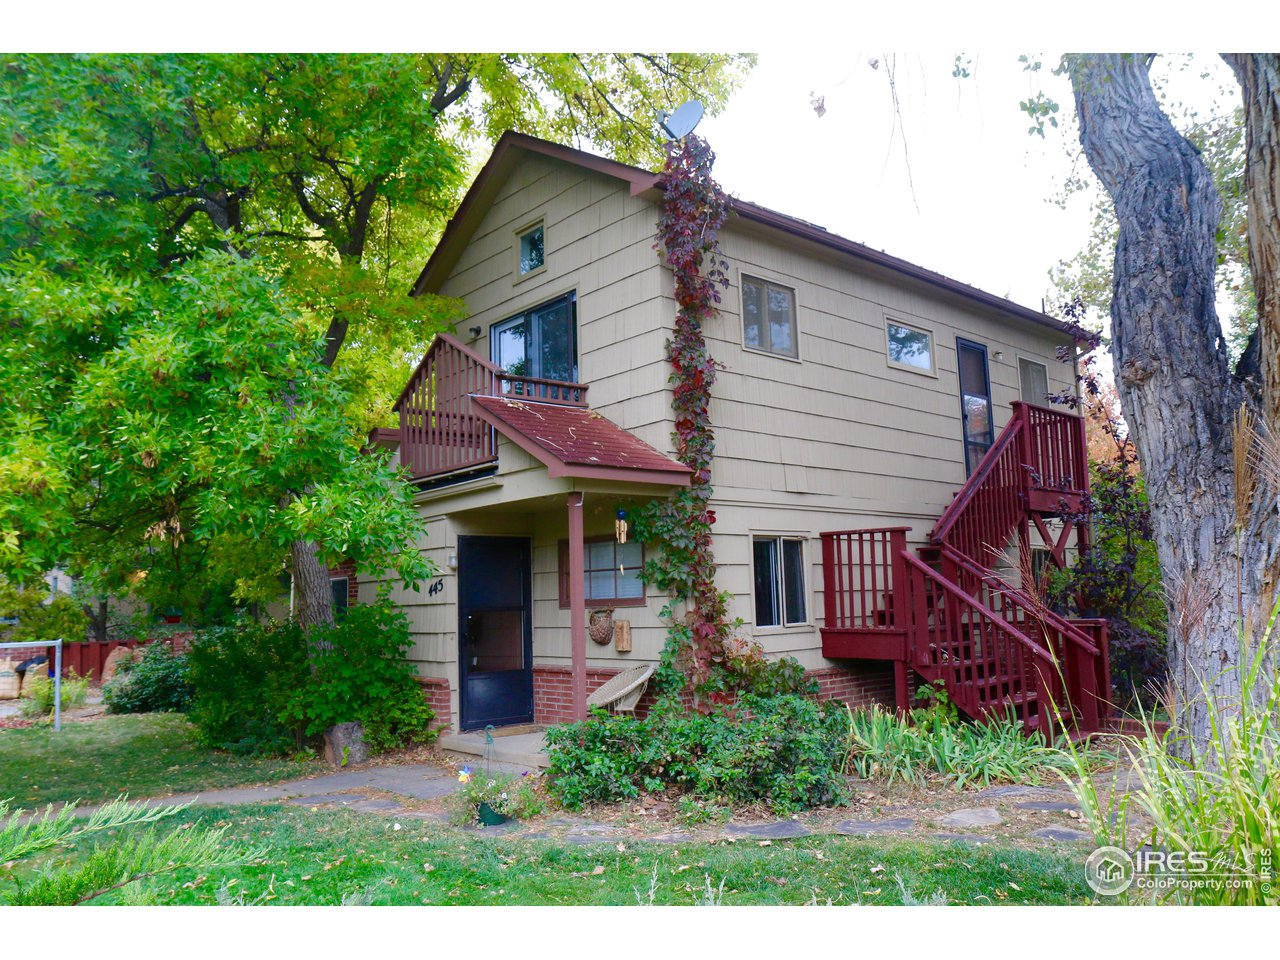 445 Dewey Ave, Boulder CO 80304